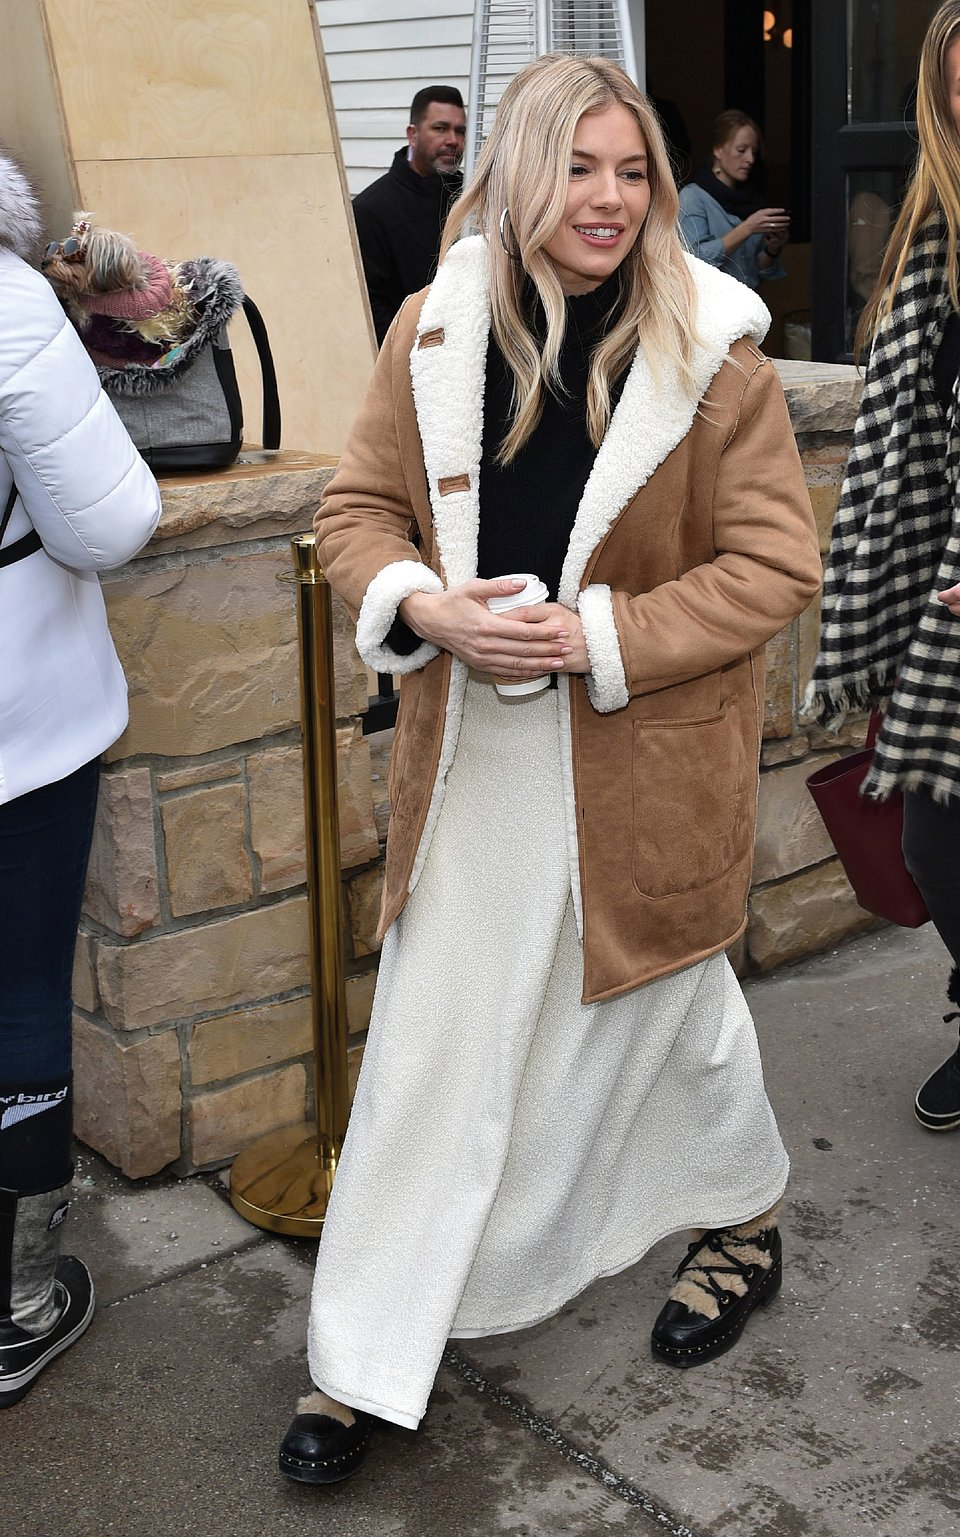 Sienna Miller wearing Mango coat - Rights from Getty images  24012020 pr+ social media  PA images.2.jpg